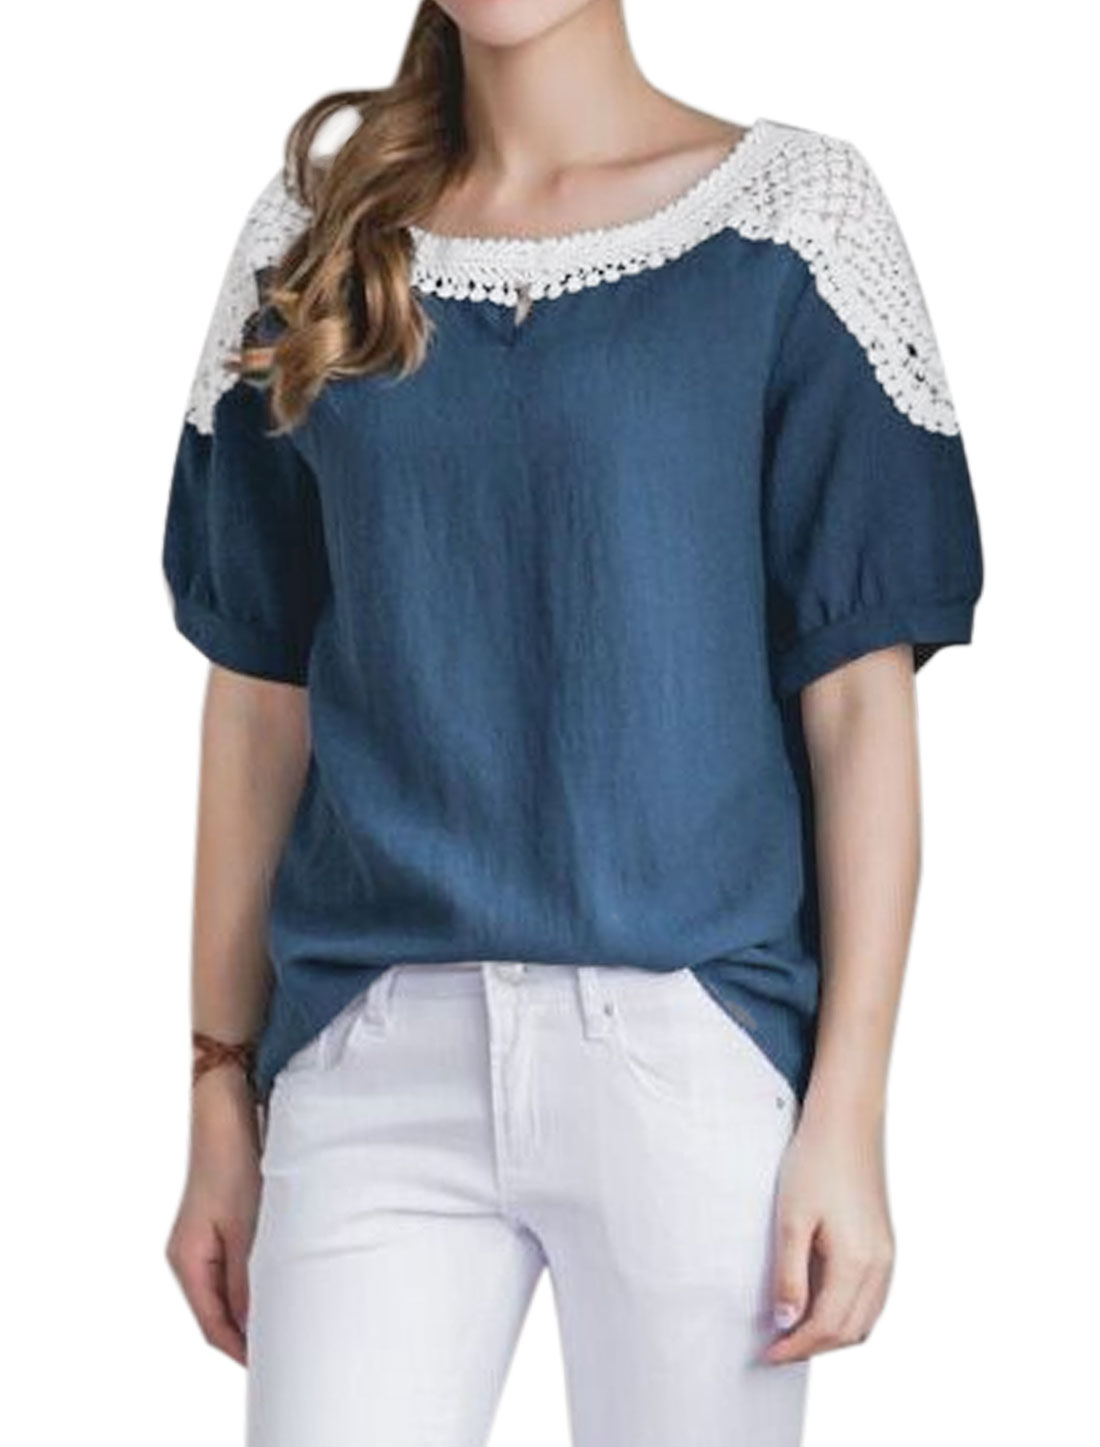 Women Round Neck Elbow Sleeves Panel Design Casual Top Blue XS